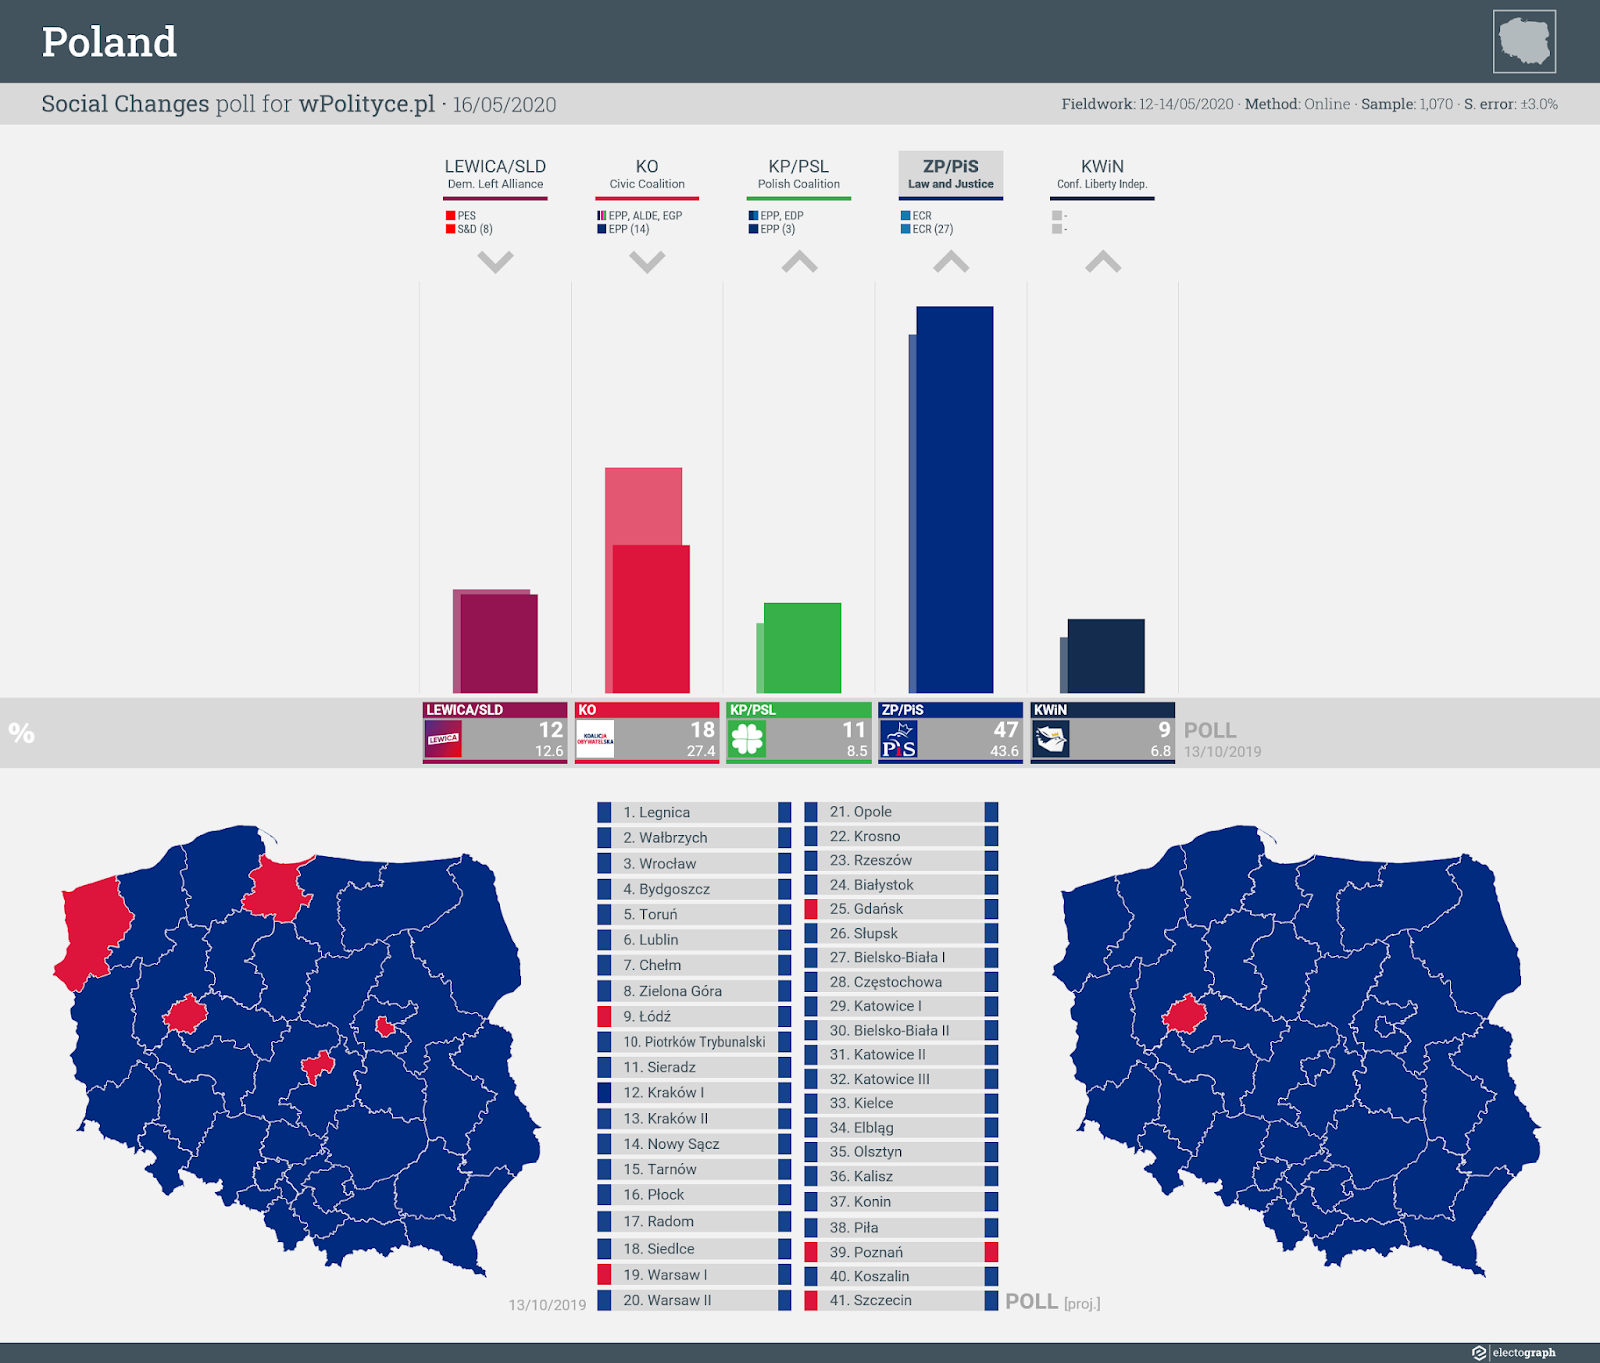 POLAND: Social Changes poll chart for wPolityce.pl, 16 May 2020